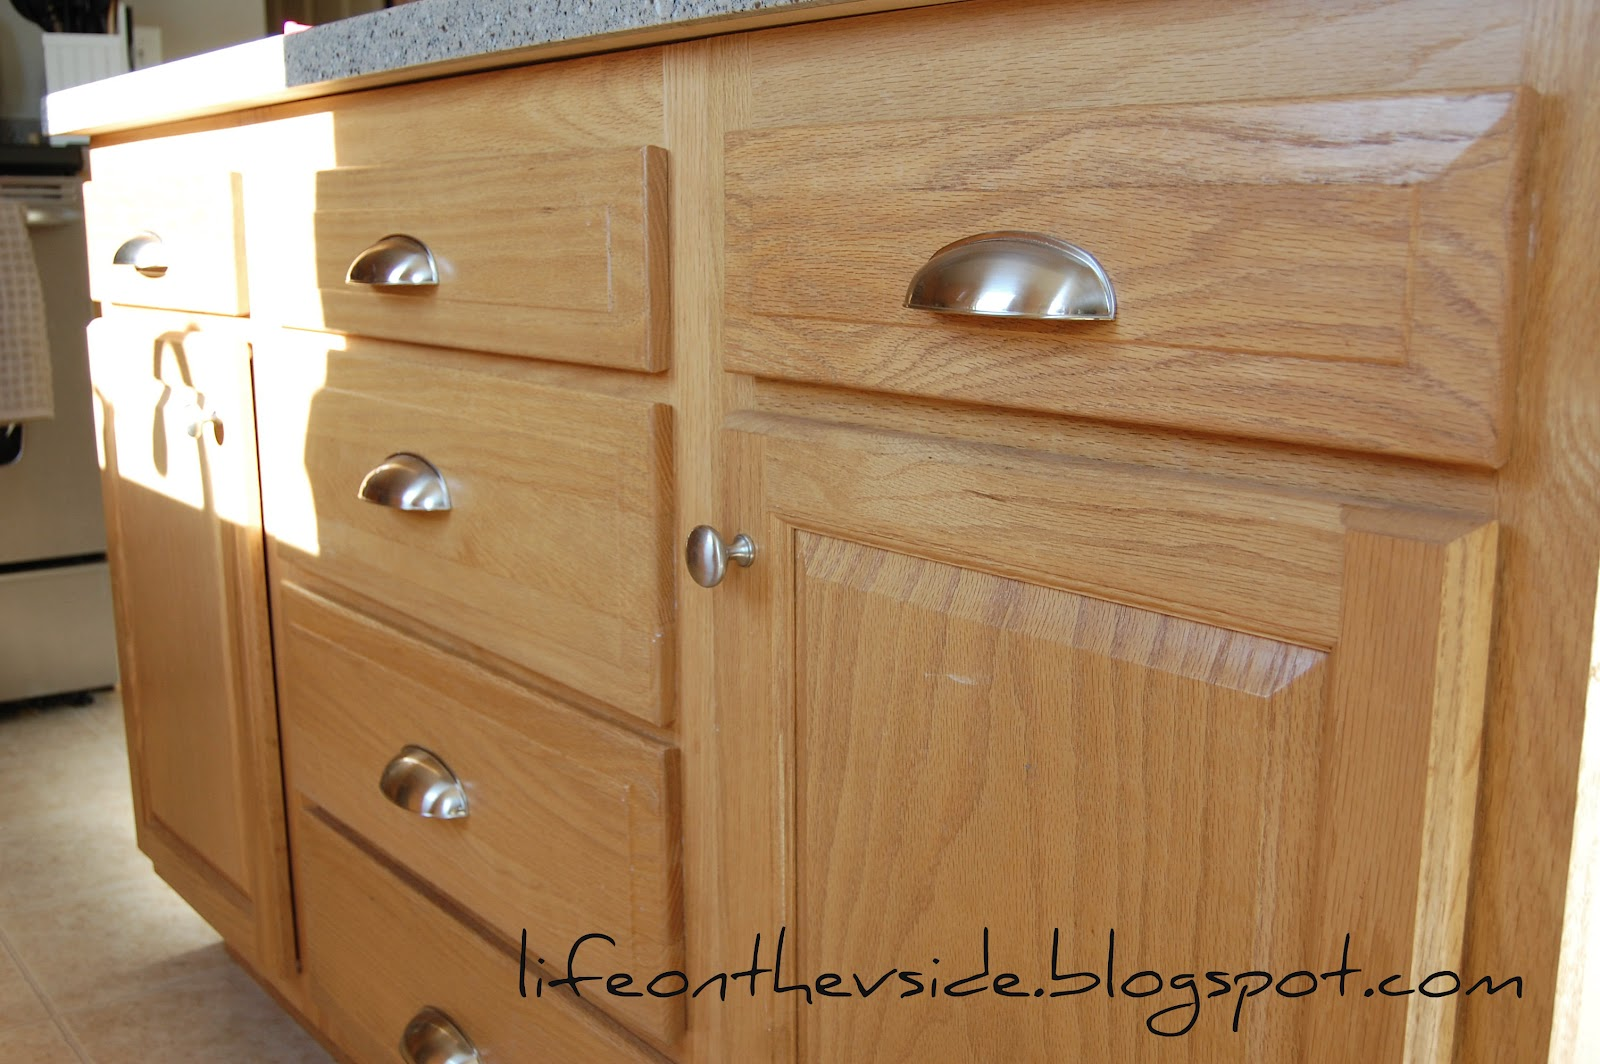 Added Bin Pulls To The Drawers And Simple Knobs To The Doors